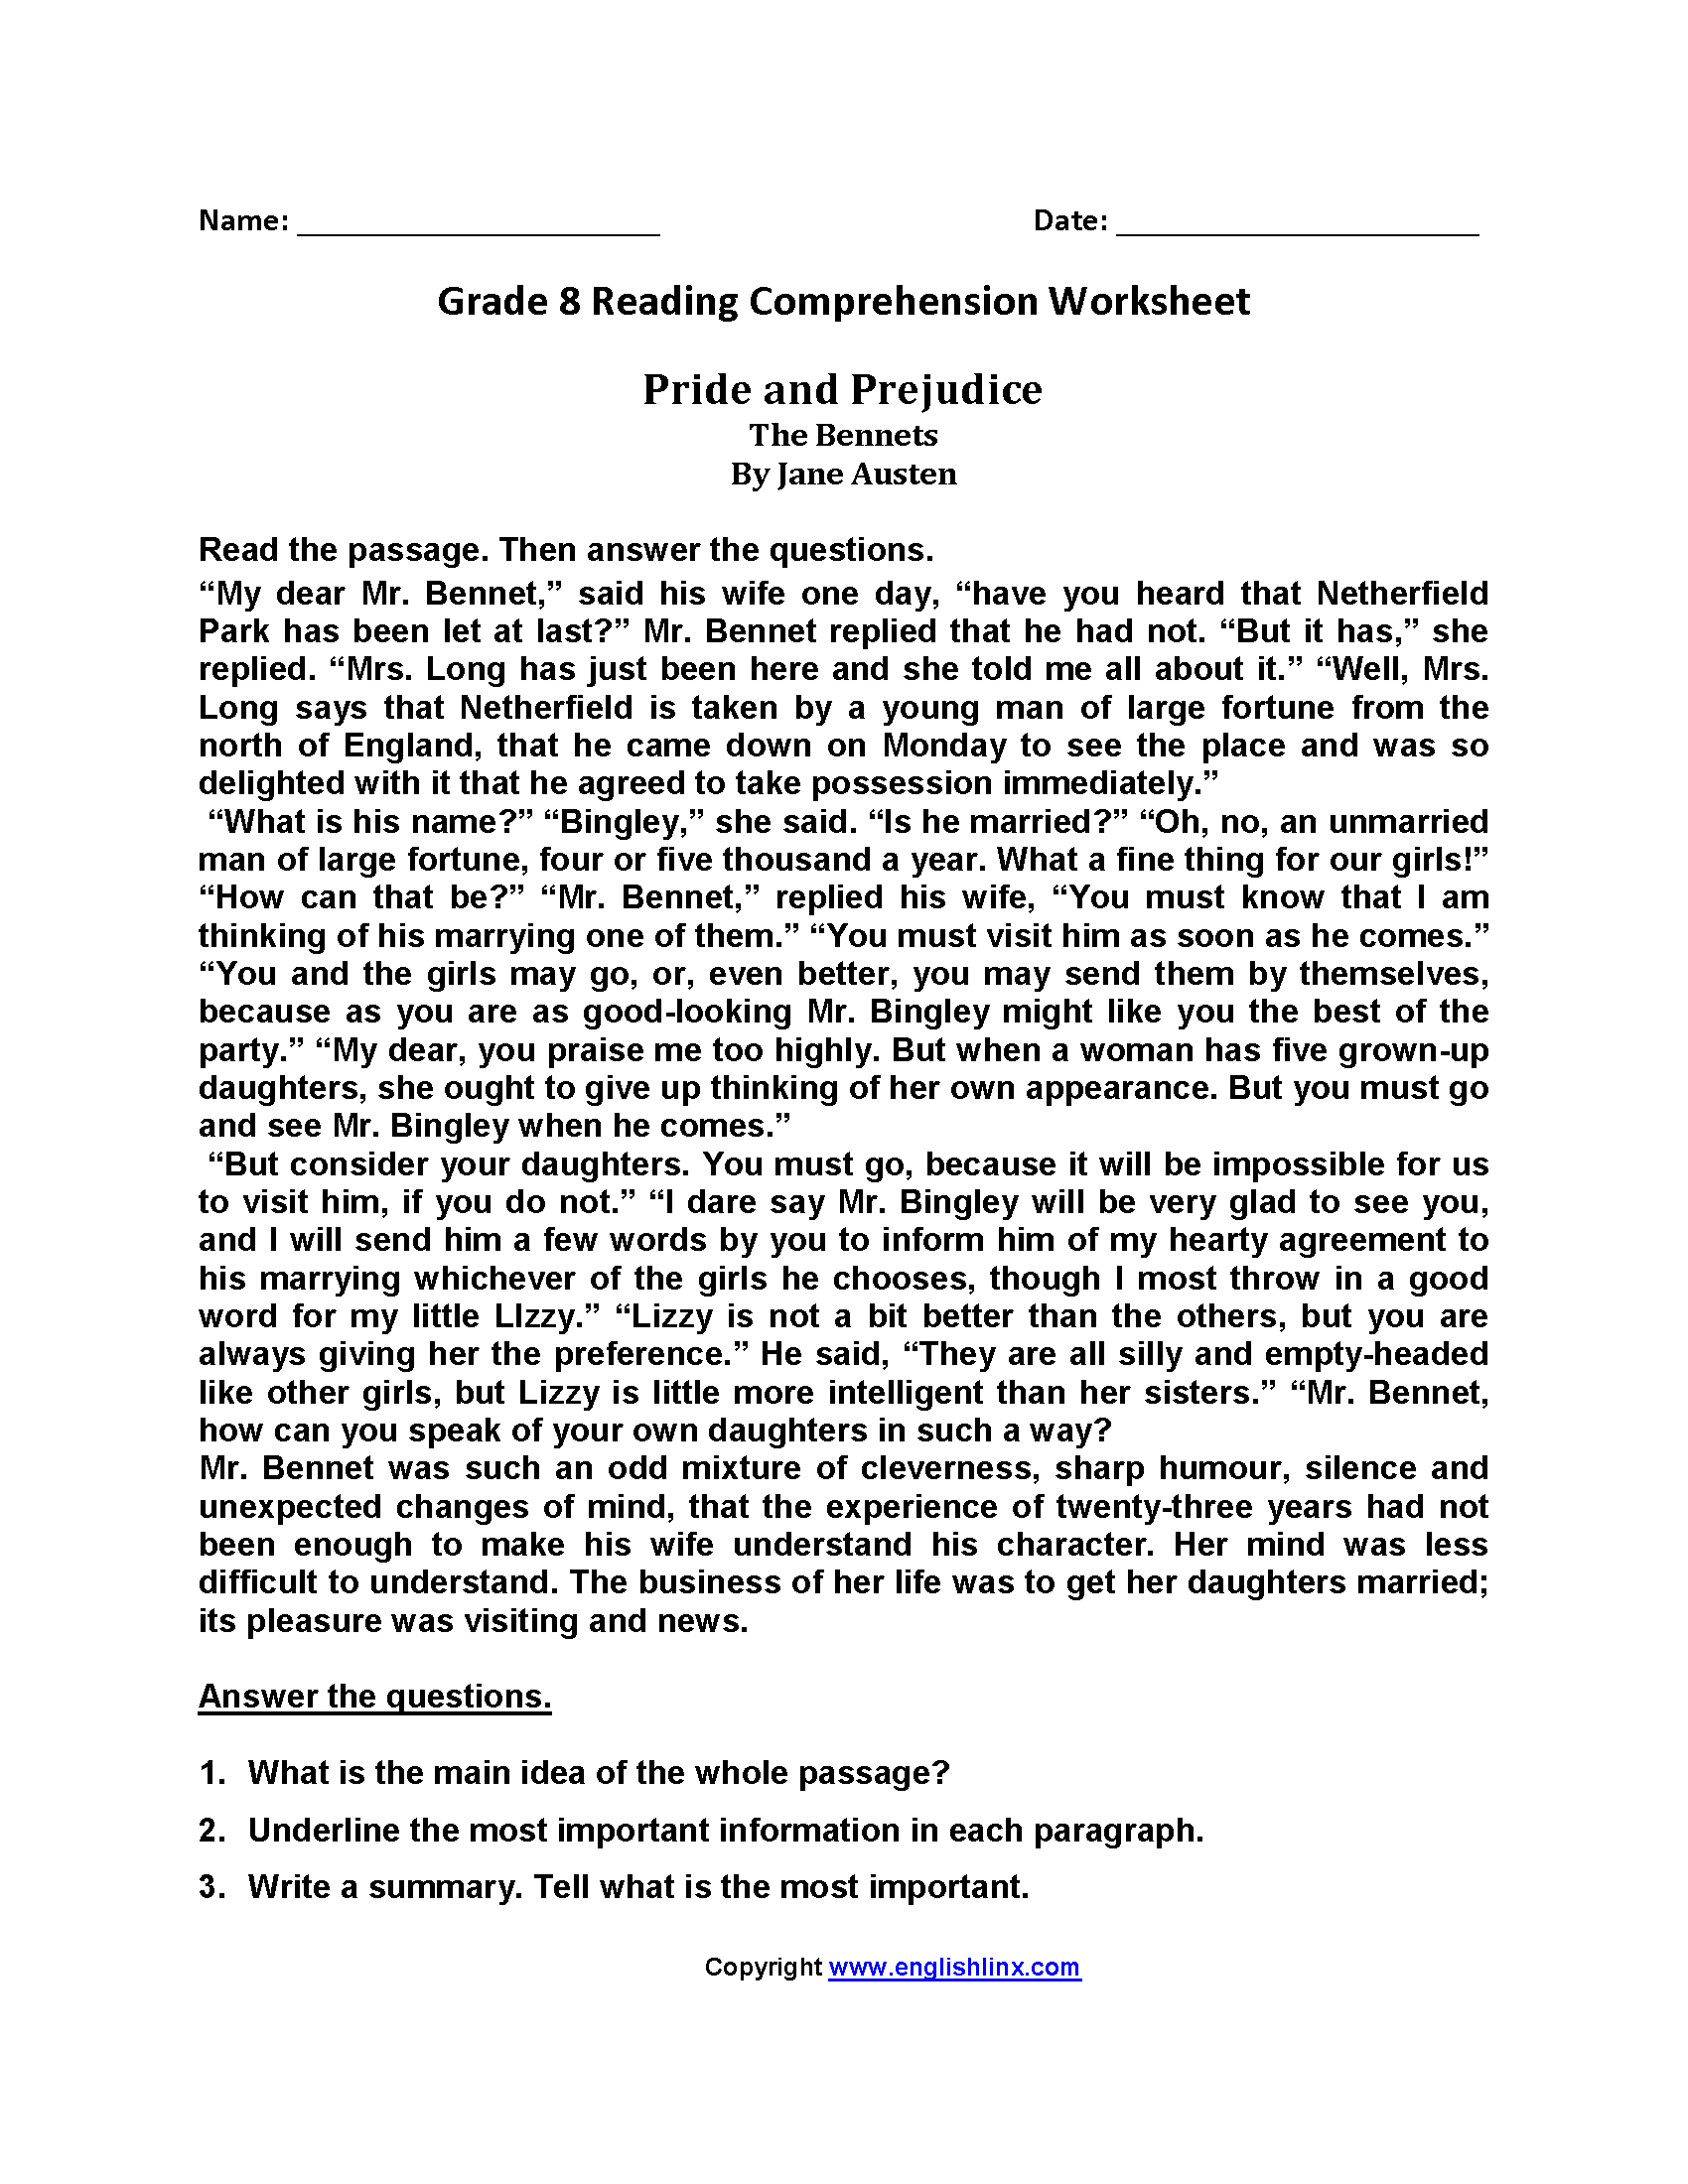 Pride and Prejudice Eighth Grade Reading Worksheets | 8th Grade ...